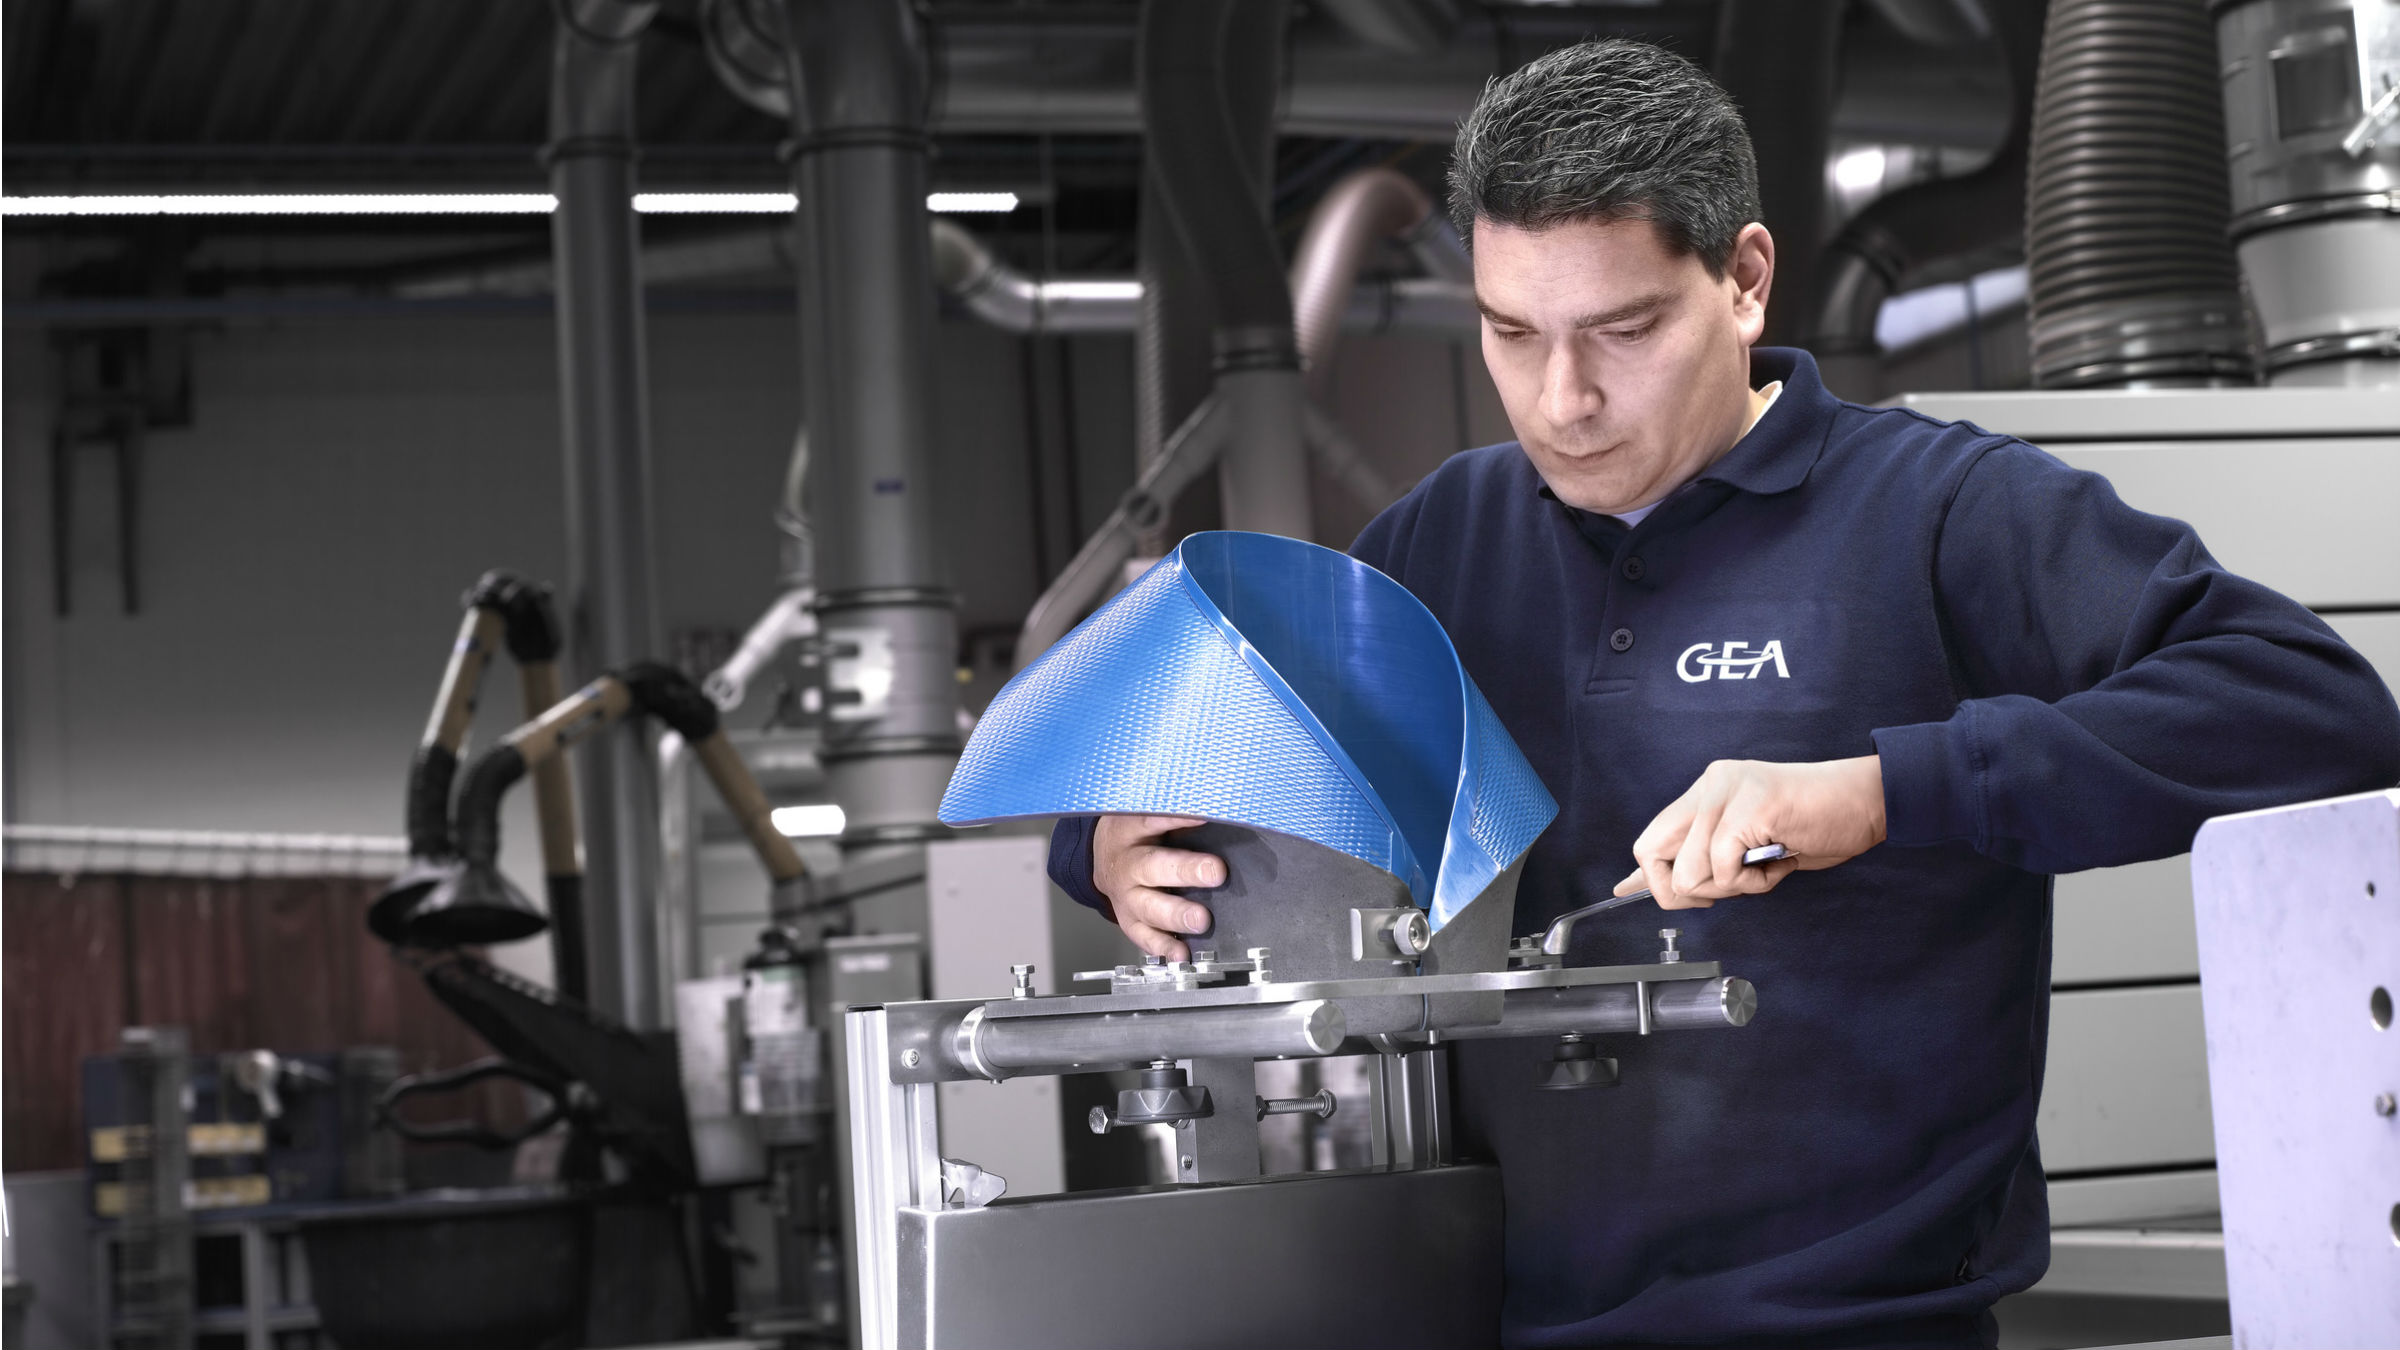 GEA-Toolings-provide-greater-flexibility-and-advanced-performance